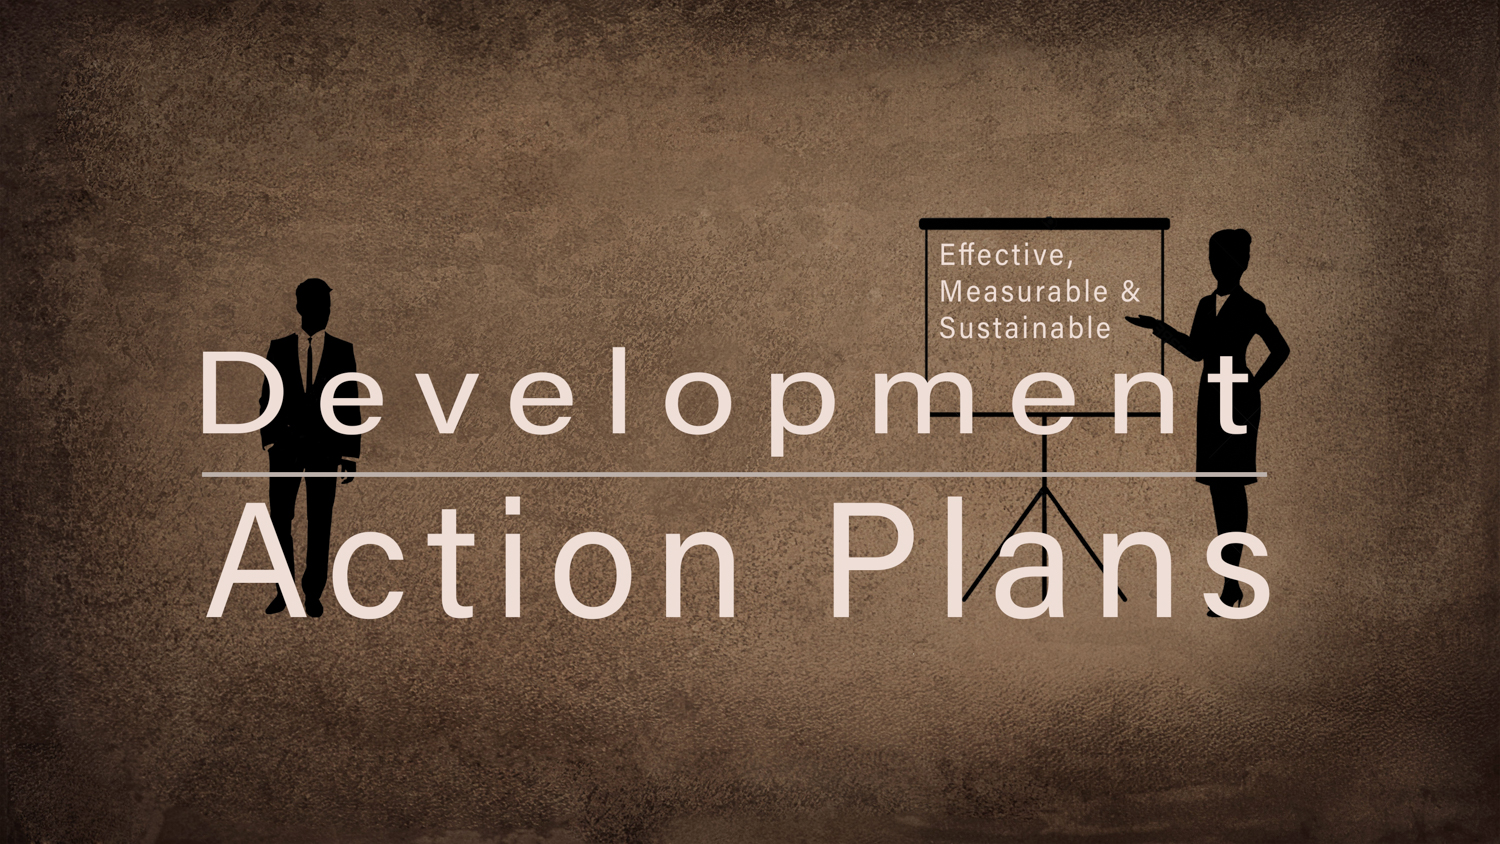 Development Action Plans